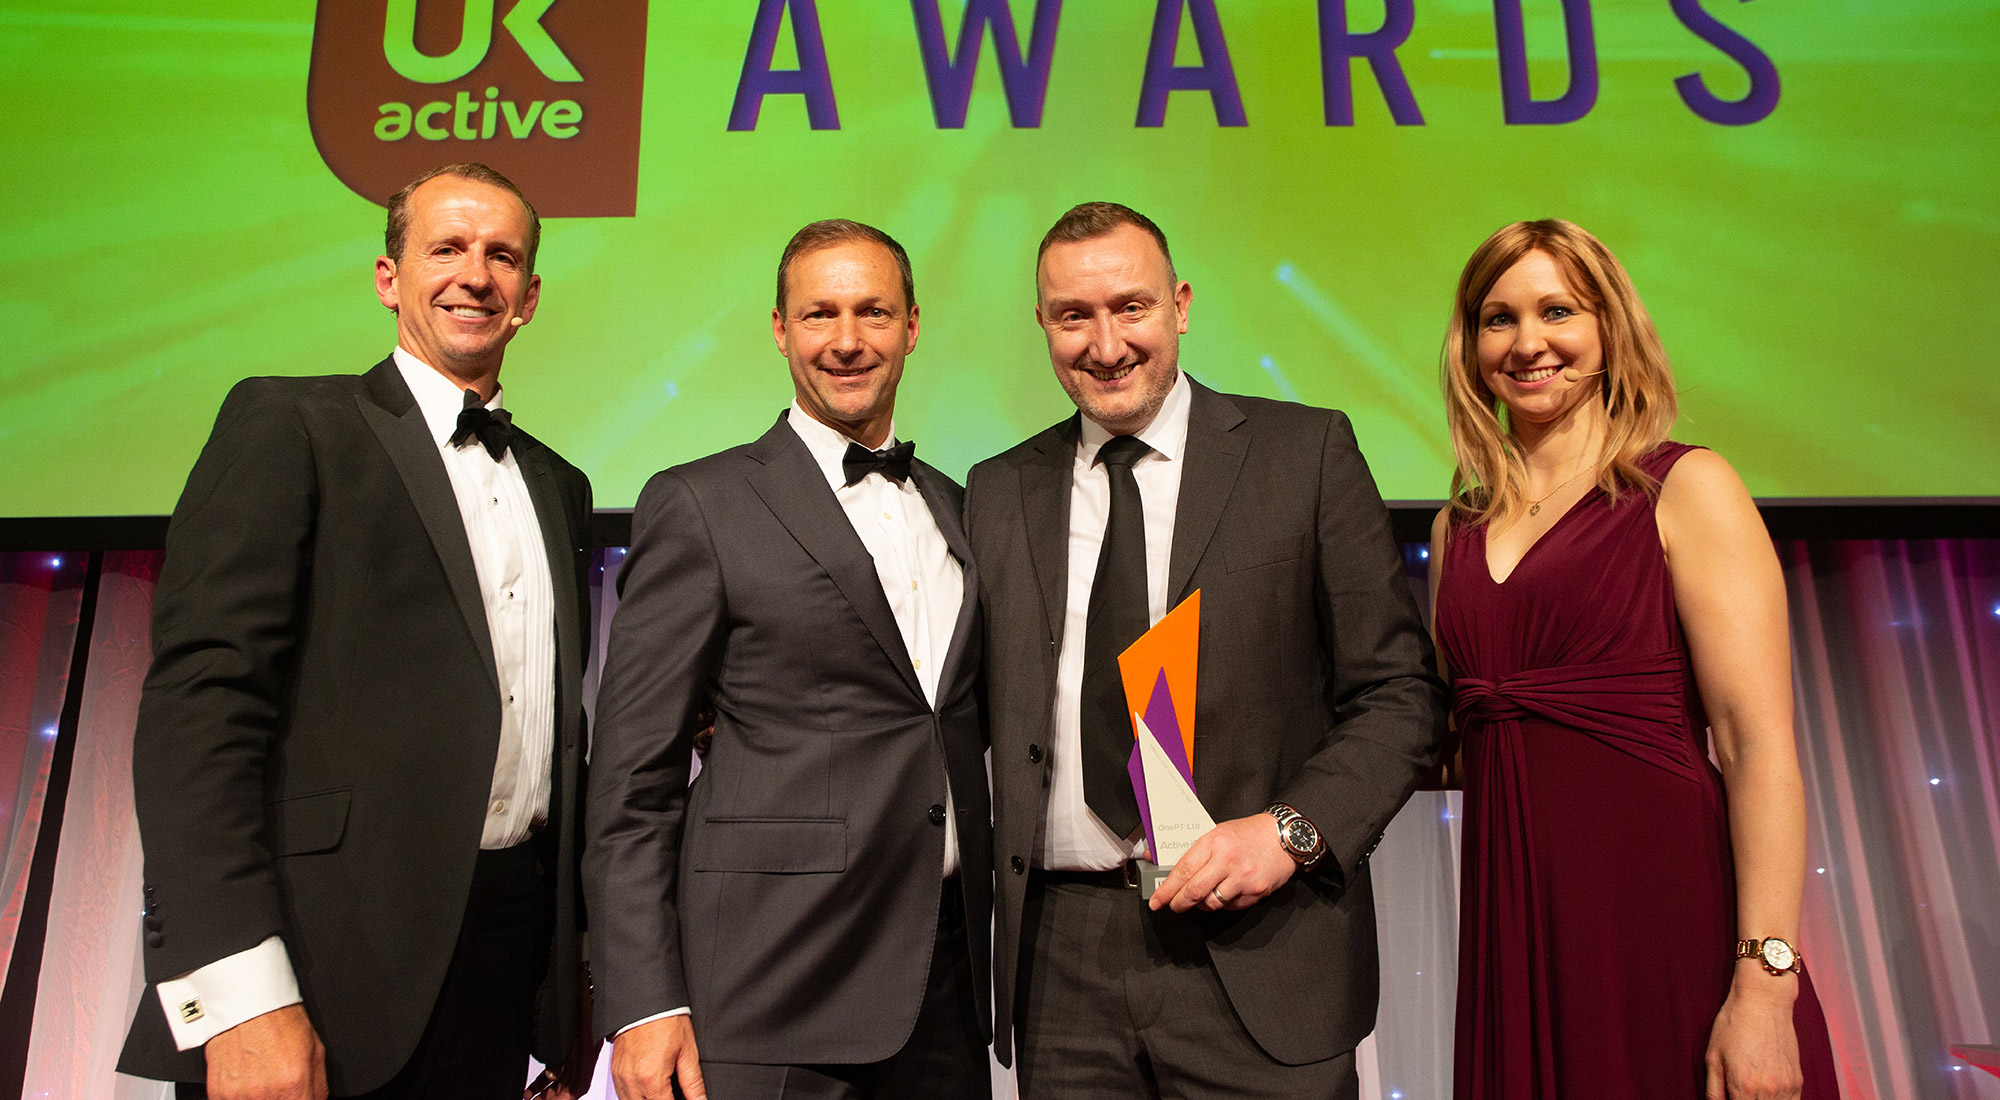 Winning at the ukactive Awards helped us to improve our business